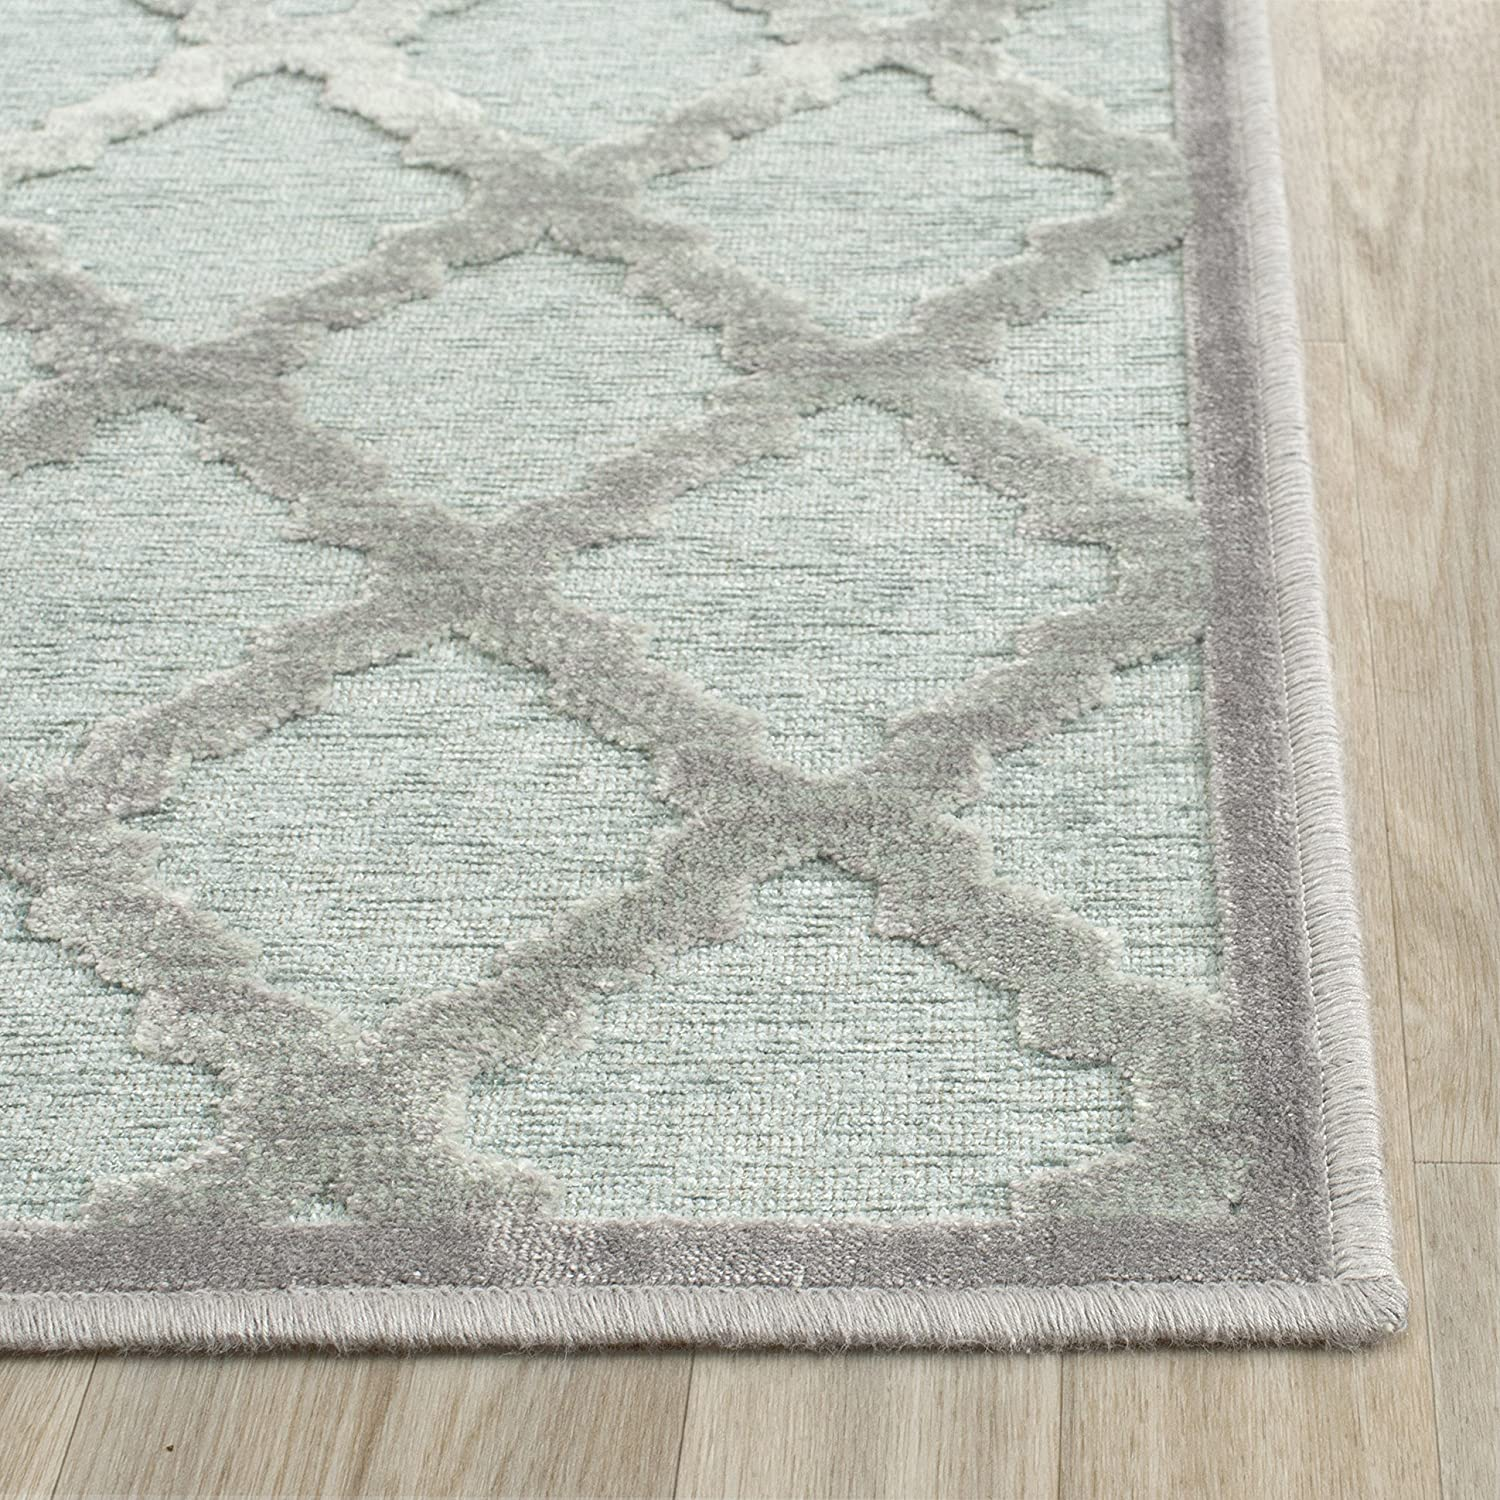 Safavieh Grenada gewebter Teppich, PAR352-2640, Taupe Taupe Taupe   Mehrfarbig, 78 X 121  cm 6ce03f